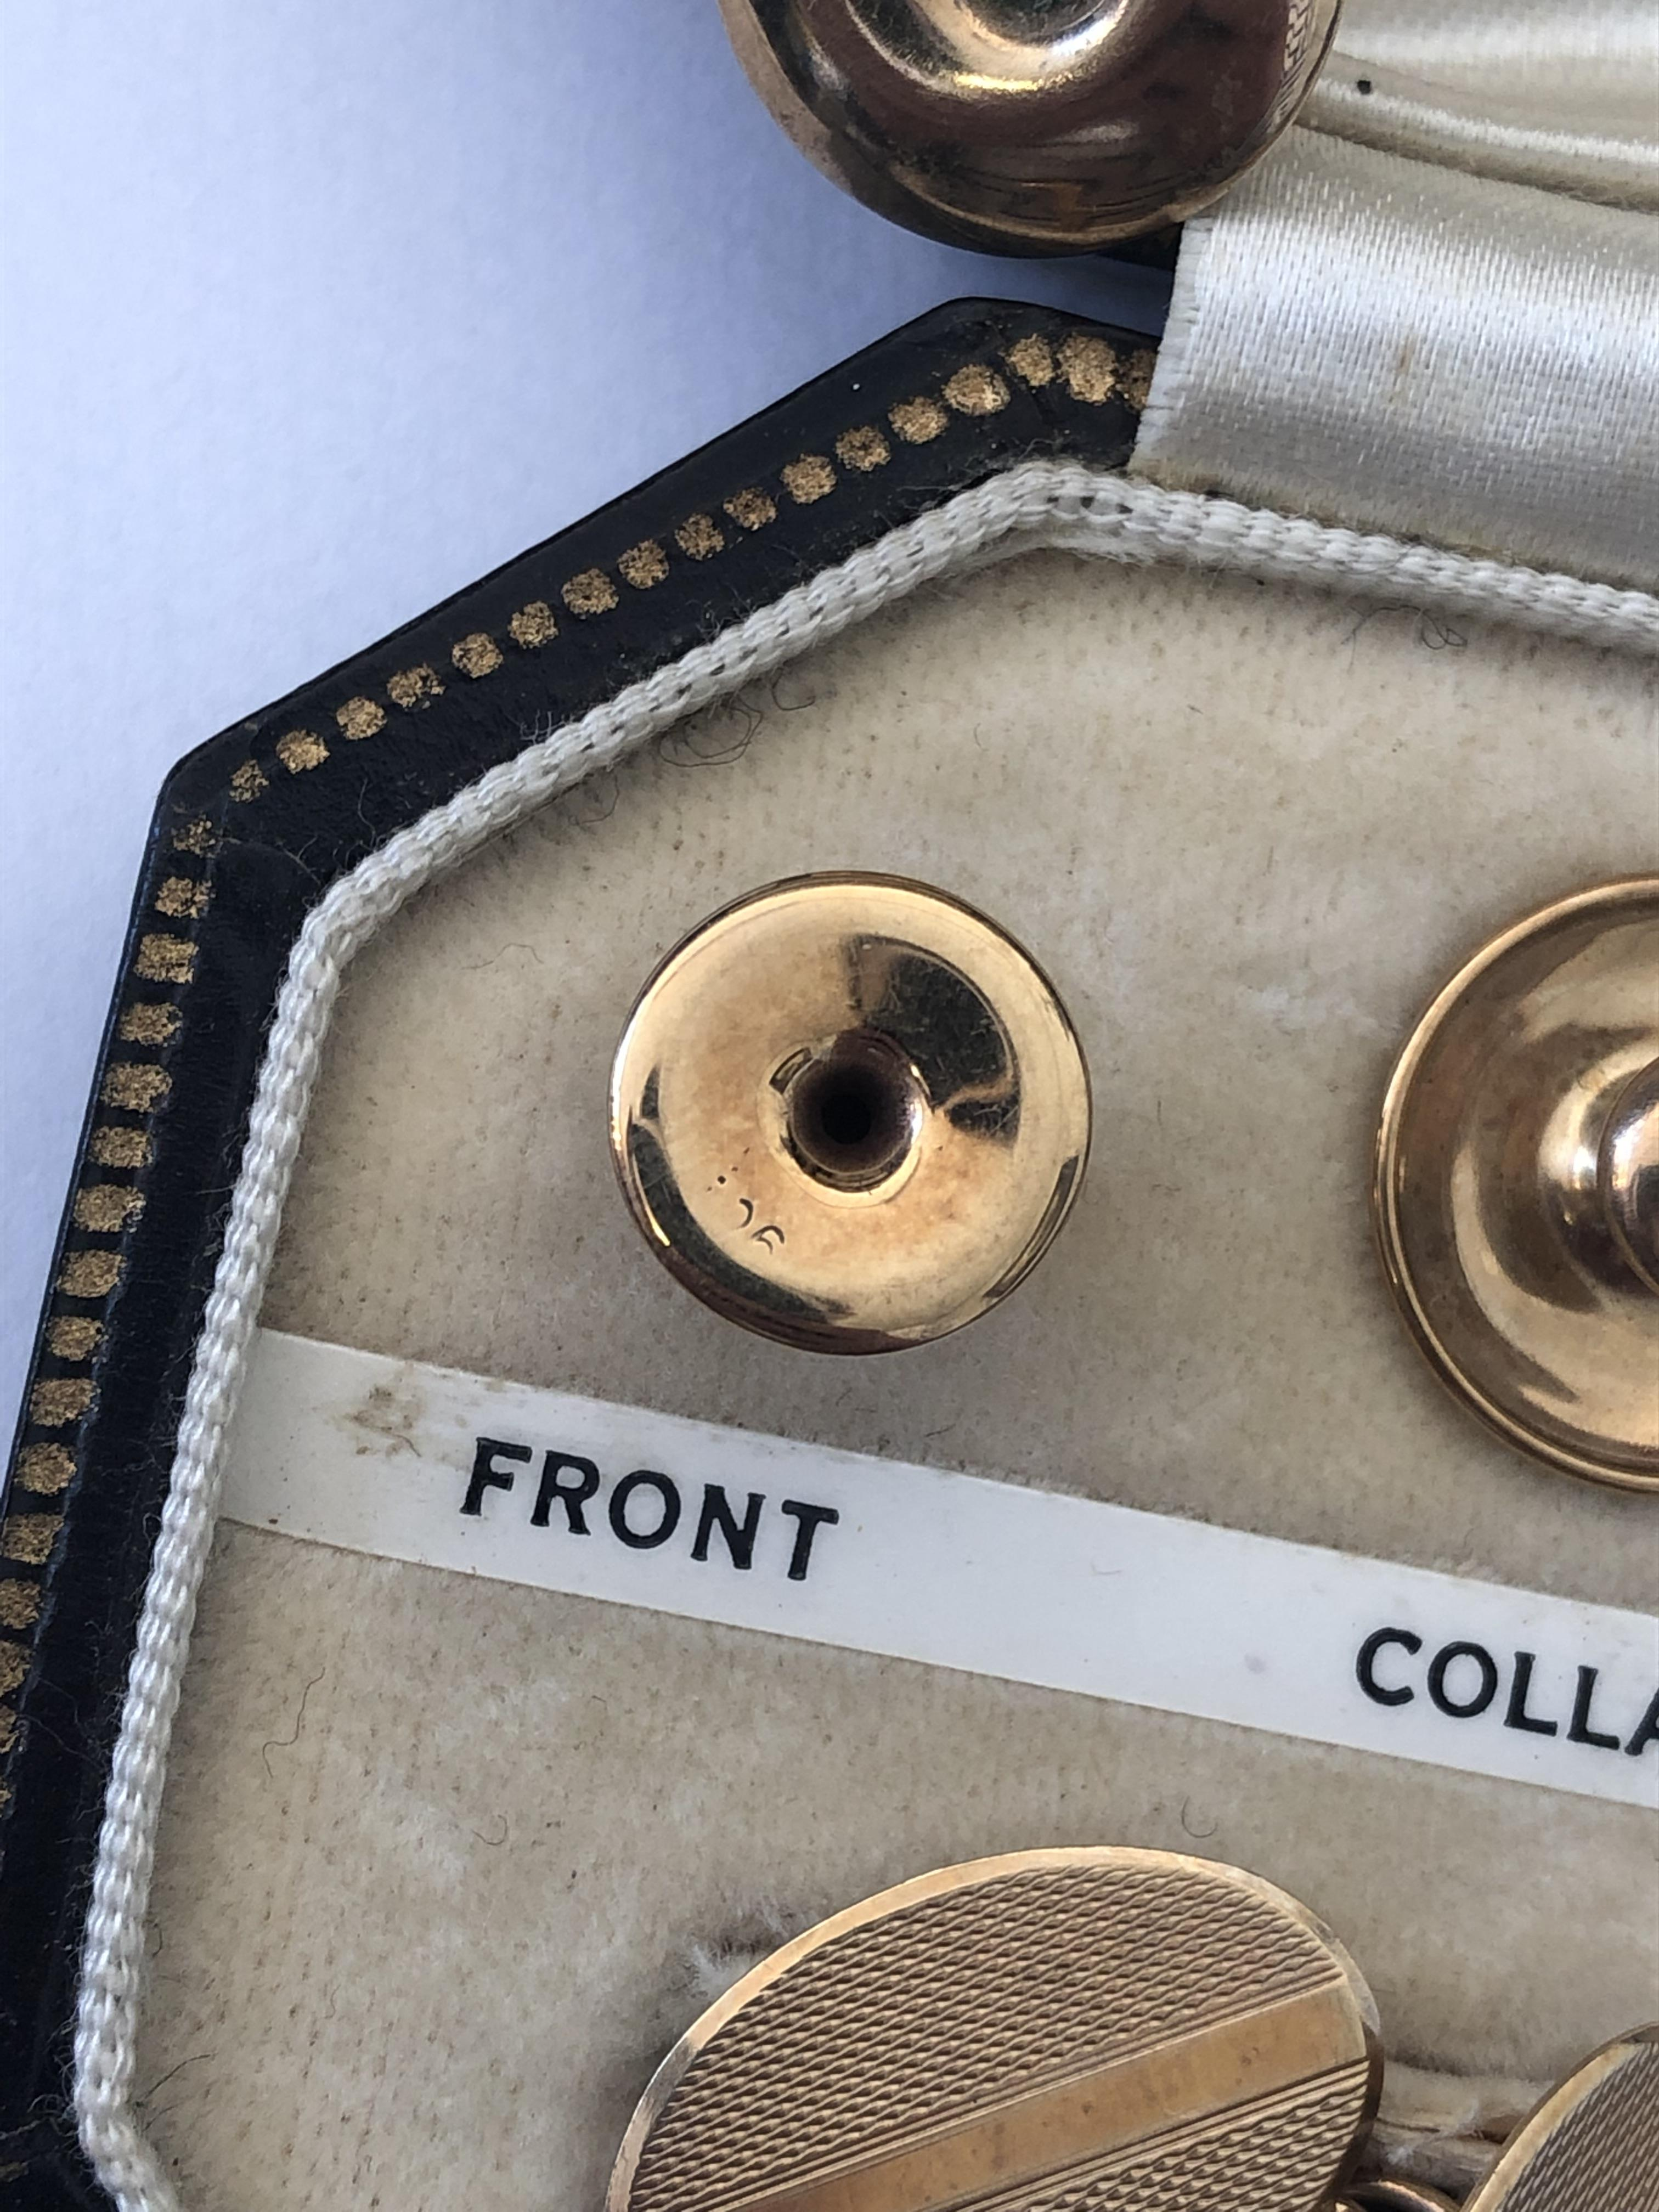 Lot 227 - 9CT GOLD CASED COMPLETE DRESS SET OF COLLAR STUDS AND CUFF LINKS 7.